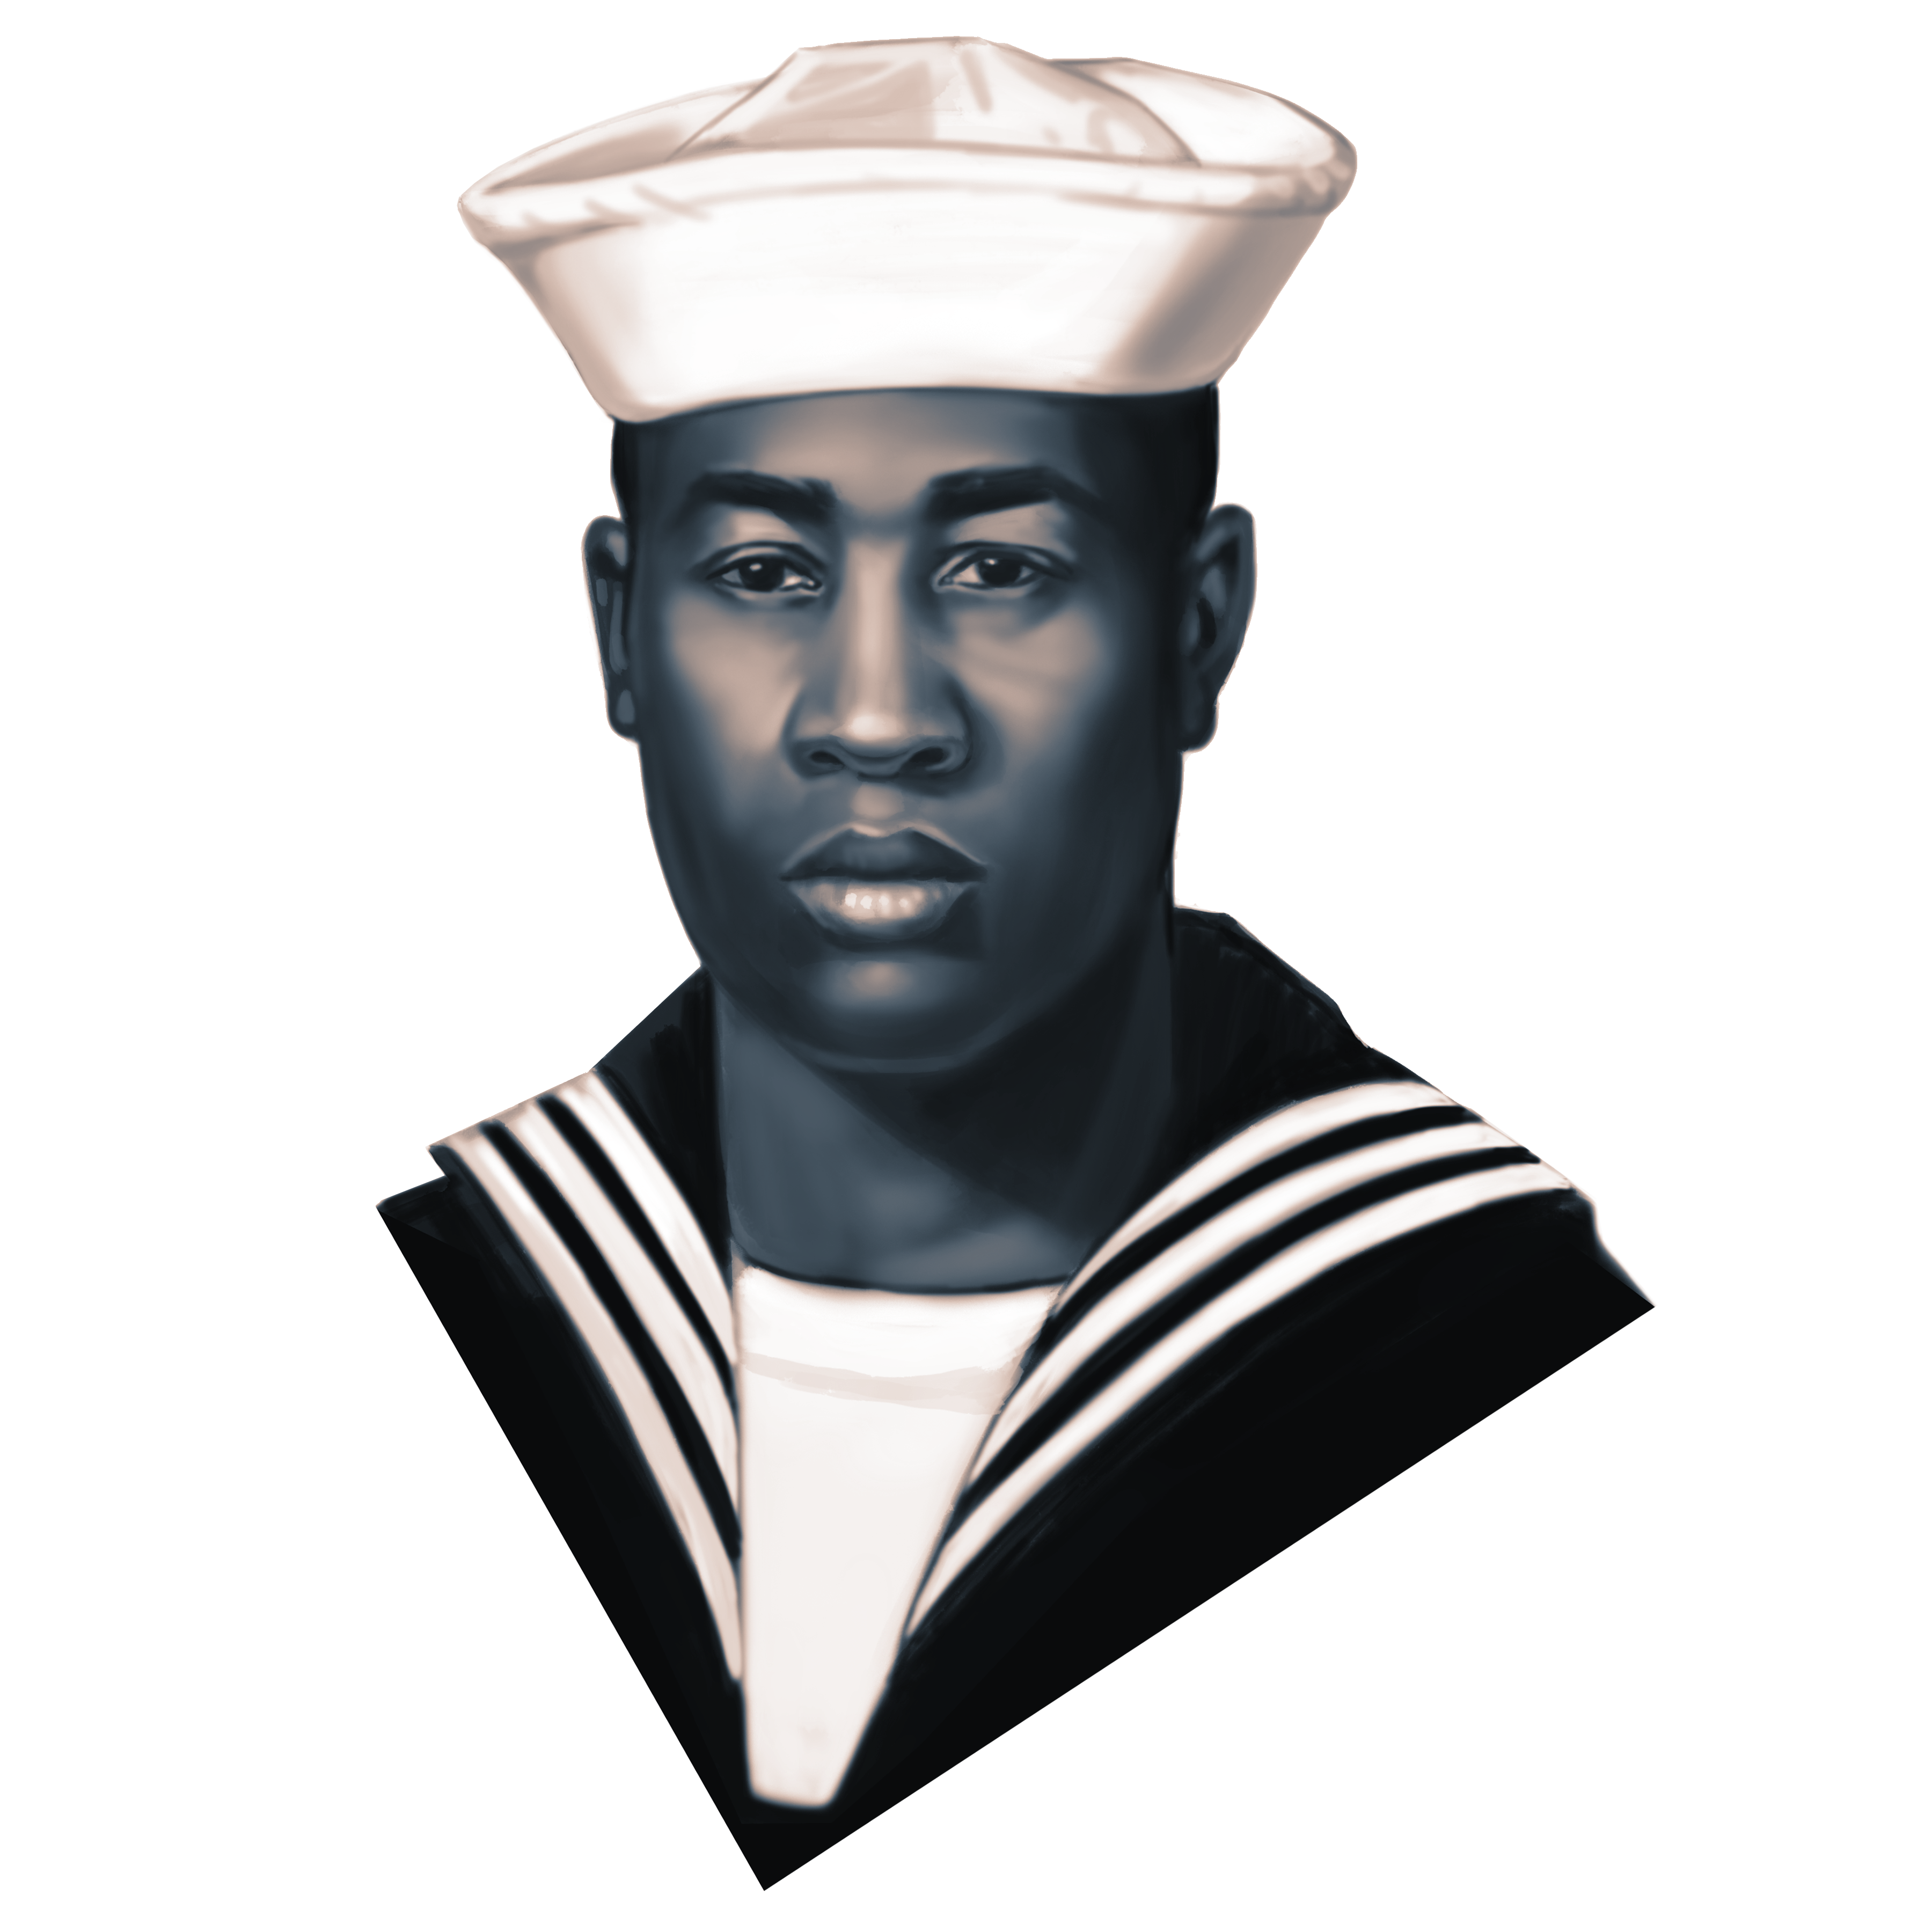 Petty Officer Second Class Corey George Ingram, 28